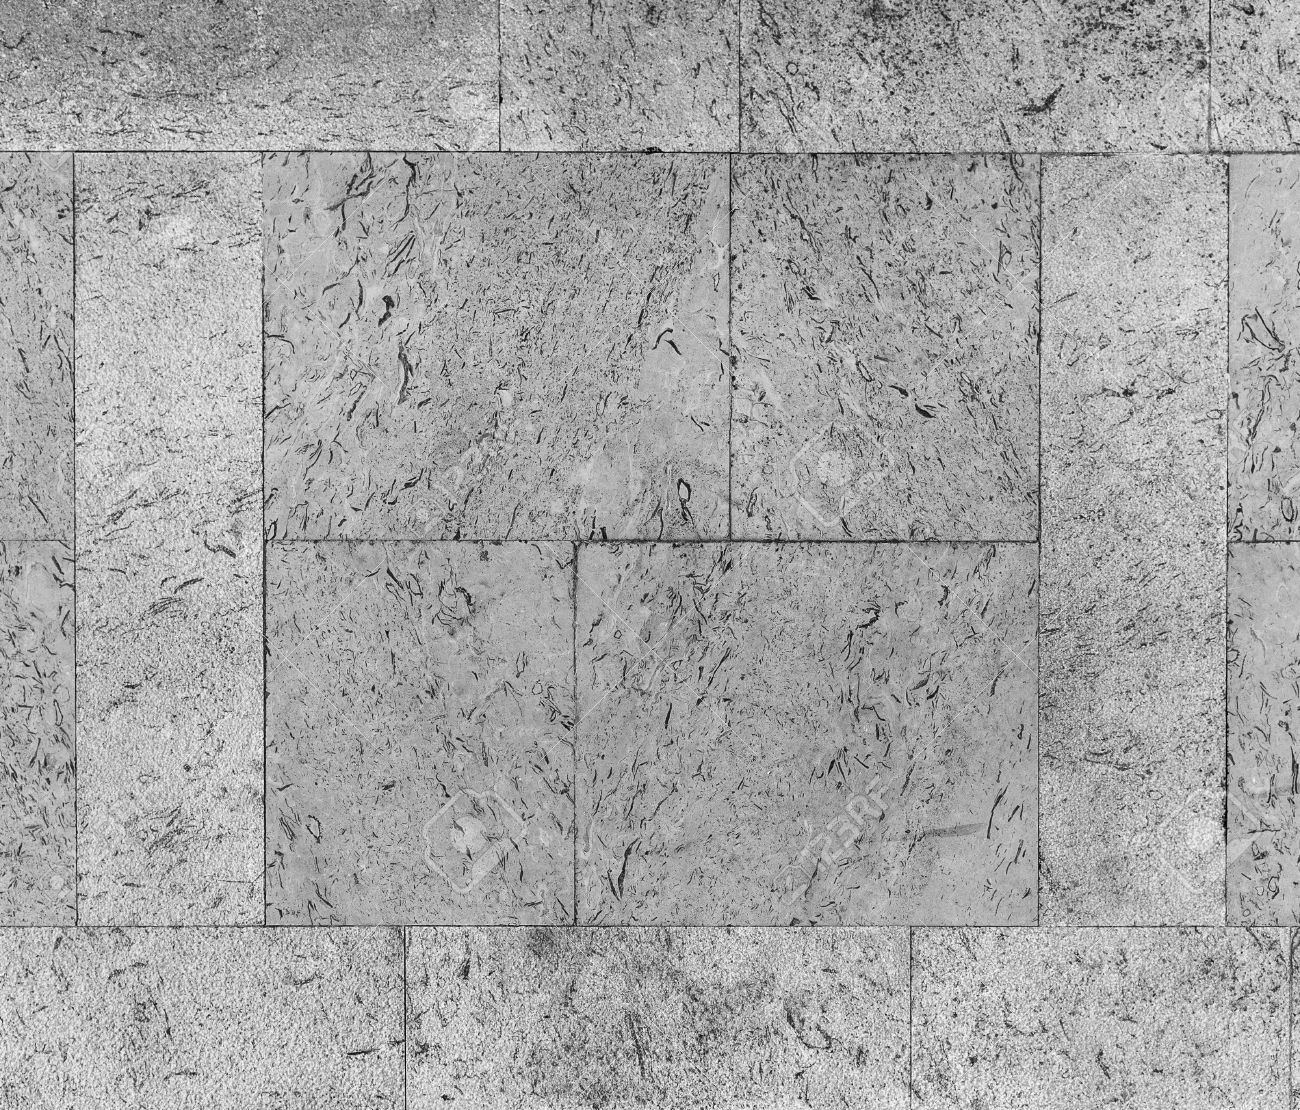 Marble Or Granite Floor Slabs For Outside Pavement Flooring Natural Gray Stone Texture